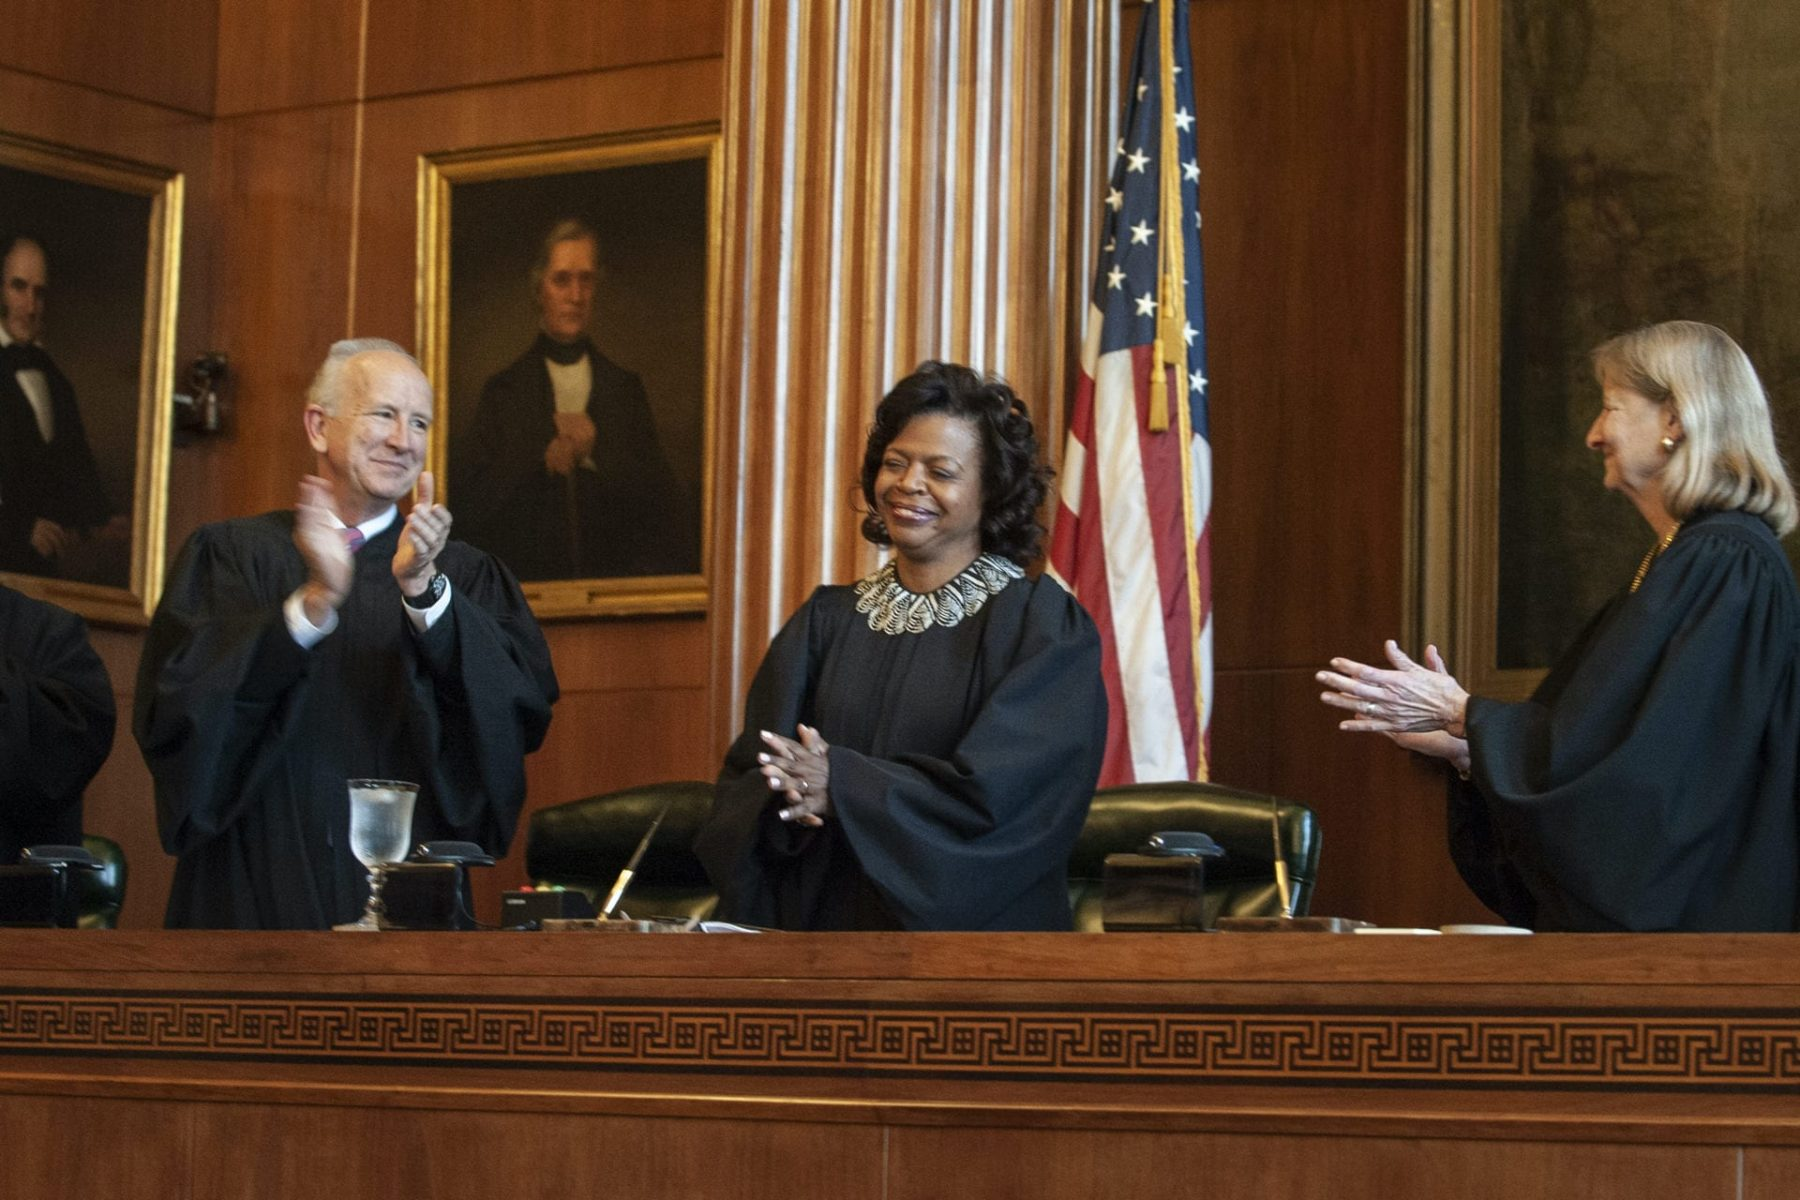 """In this March 7, 2019 file photo, Associate Justices Paul Newby and Robin Hudson applaud for new Chief Justice Cheri Beasley, center, of the N.C. Supreme Court during Beasley's investiture ceremony in Raleigh. In North Carolina's Supreme Court chamber, above the seat held by Beasley, the second African American chief justice, hangs a towering painting of Chief Justice Thomas Ruffin, a 19th century slave owner and jurist who authored a notorious opinion about the """"absolute"""" rights of slaveholders over the enslaved.In October 2018 the state Supreme Court named a commission to review the portraits in the building that houses the court ,including Ruffin's. (Paul Woolverton/The Fayetteville Observer via AP)"""